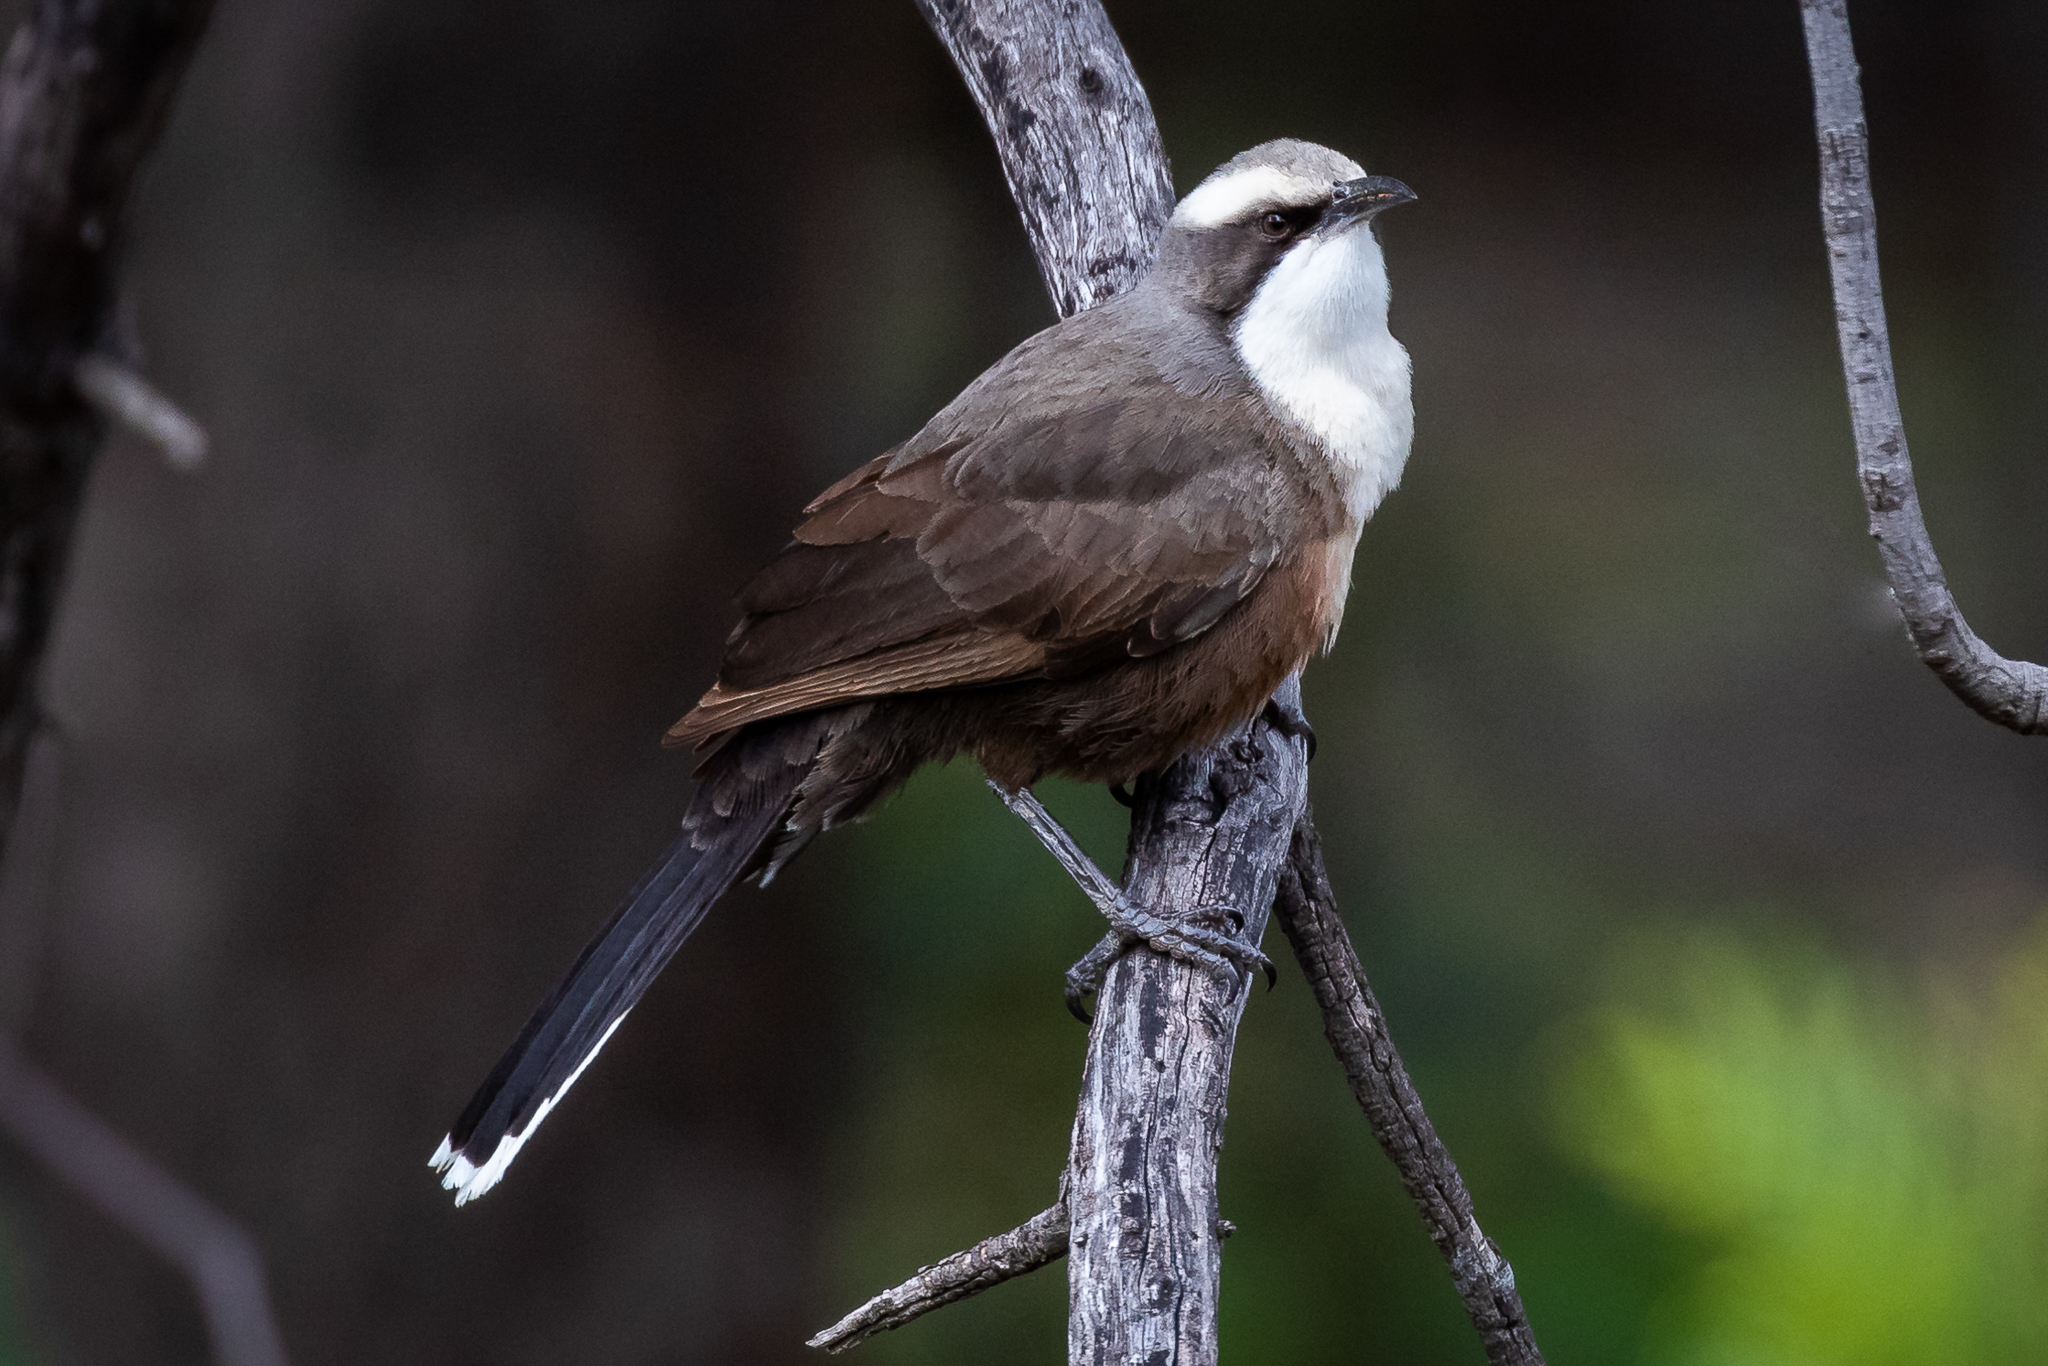 The charming Grey-crowned Babbler is usually seen in a noisy family group of up to ten or more birds, chatting away in a soft nasal twitter. They feed on insects and occasionally seeds. This bird was seen at Morongla Cemetery near Cowra.